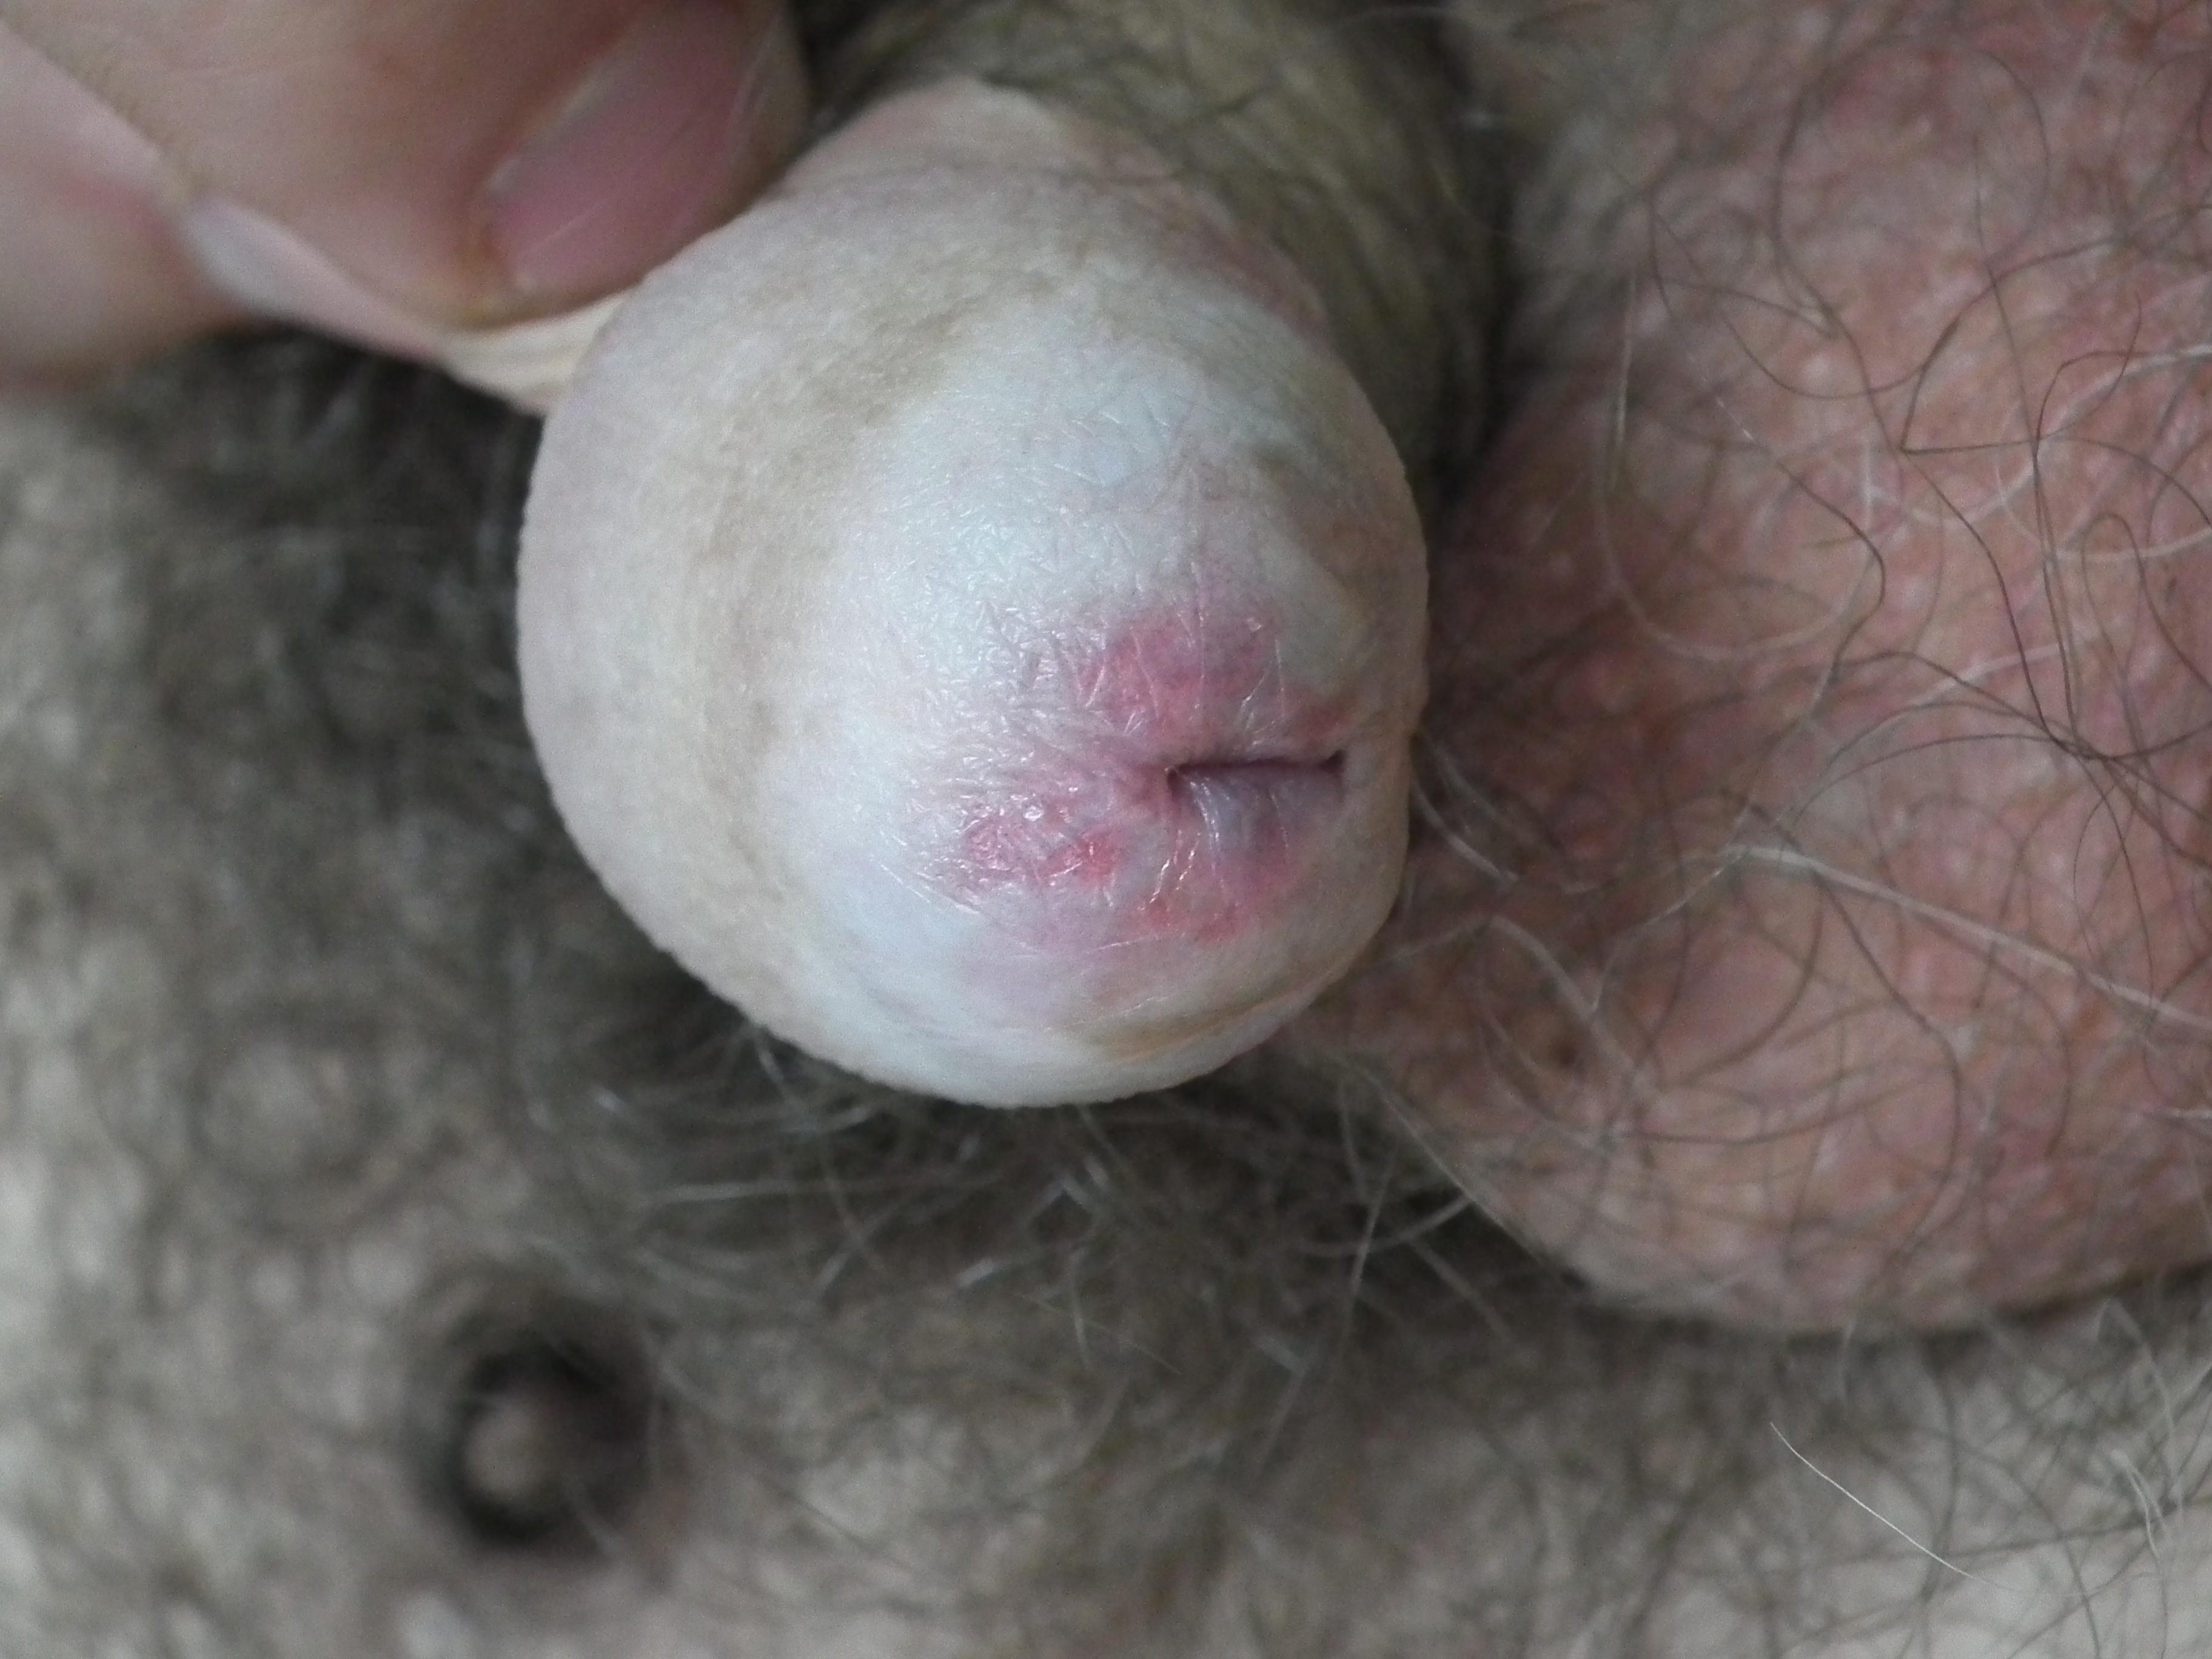 Balanitis due to lichen sclerosus – Image reproduced with permission of Associate Professor Anthony Hall